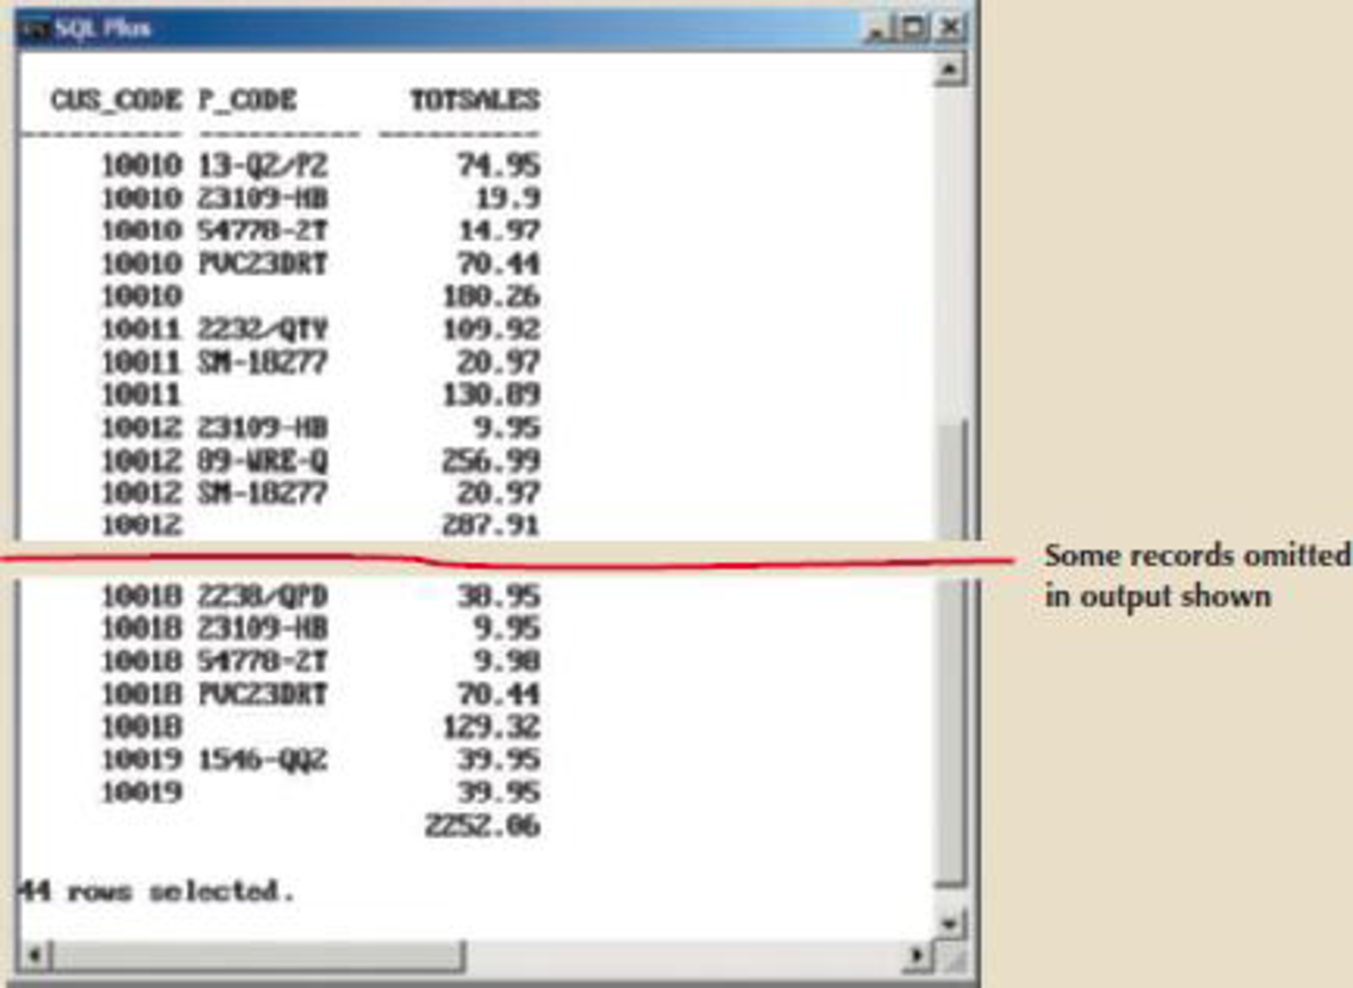 Chapter 13, Problem 5P, What is the SQL command to list the total sales by customer and by product, with subtotals by